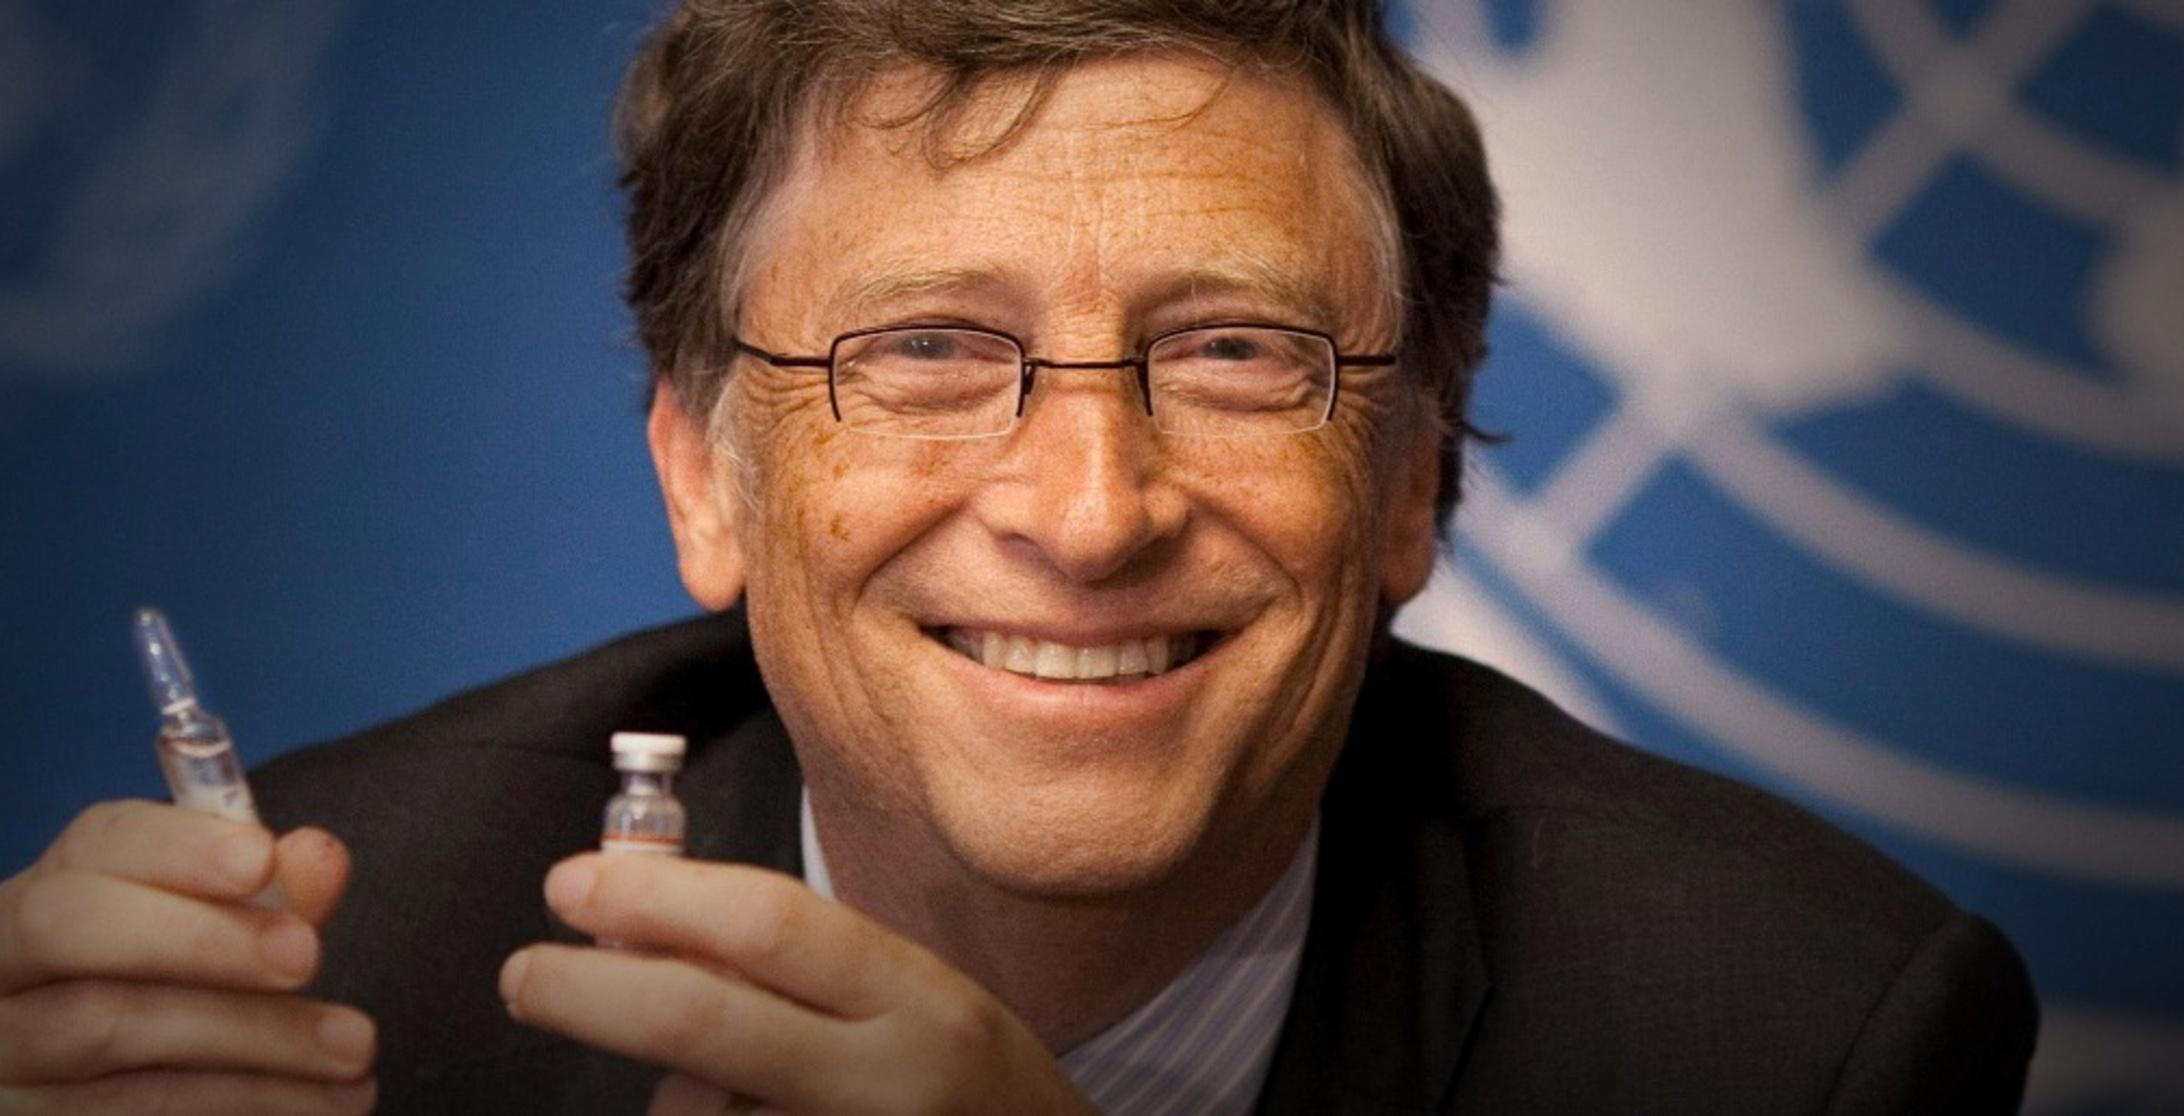 Bill Gates Says Our Lives Will Go Back To Being Normal By End Of 2022,  Thanks To COVID Vaccines